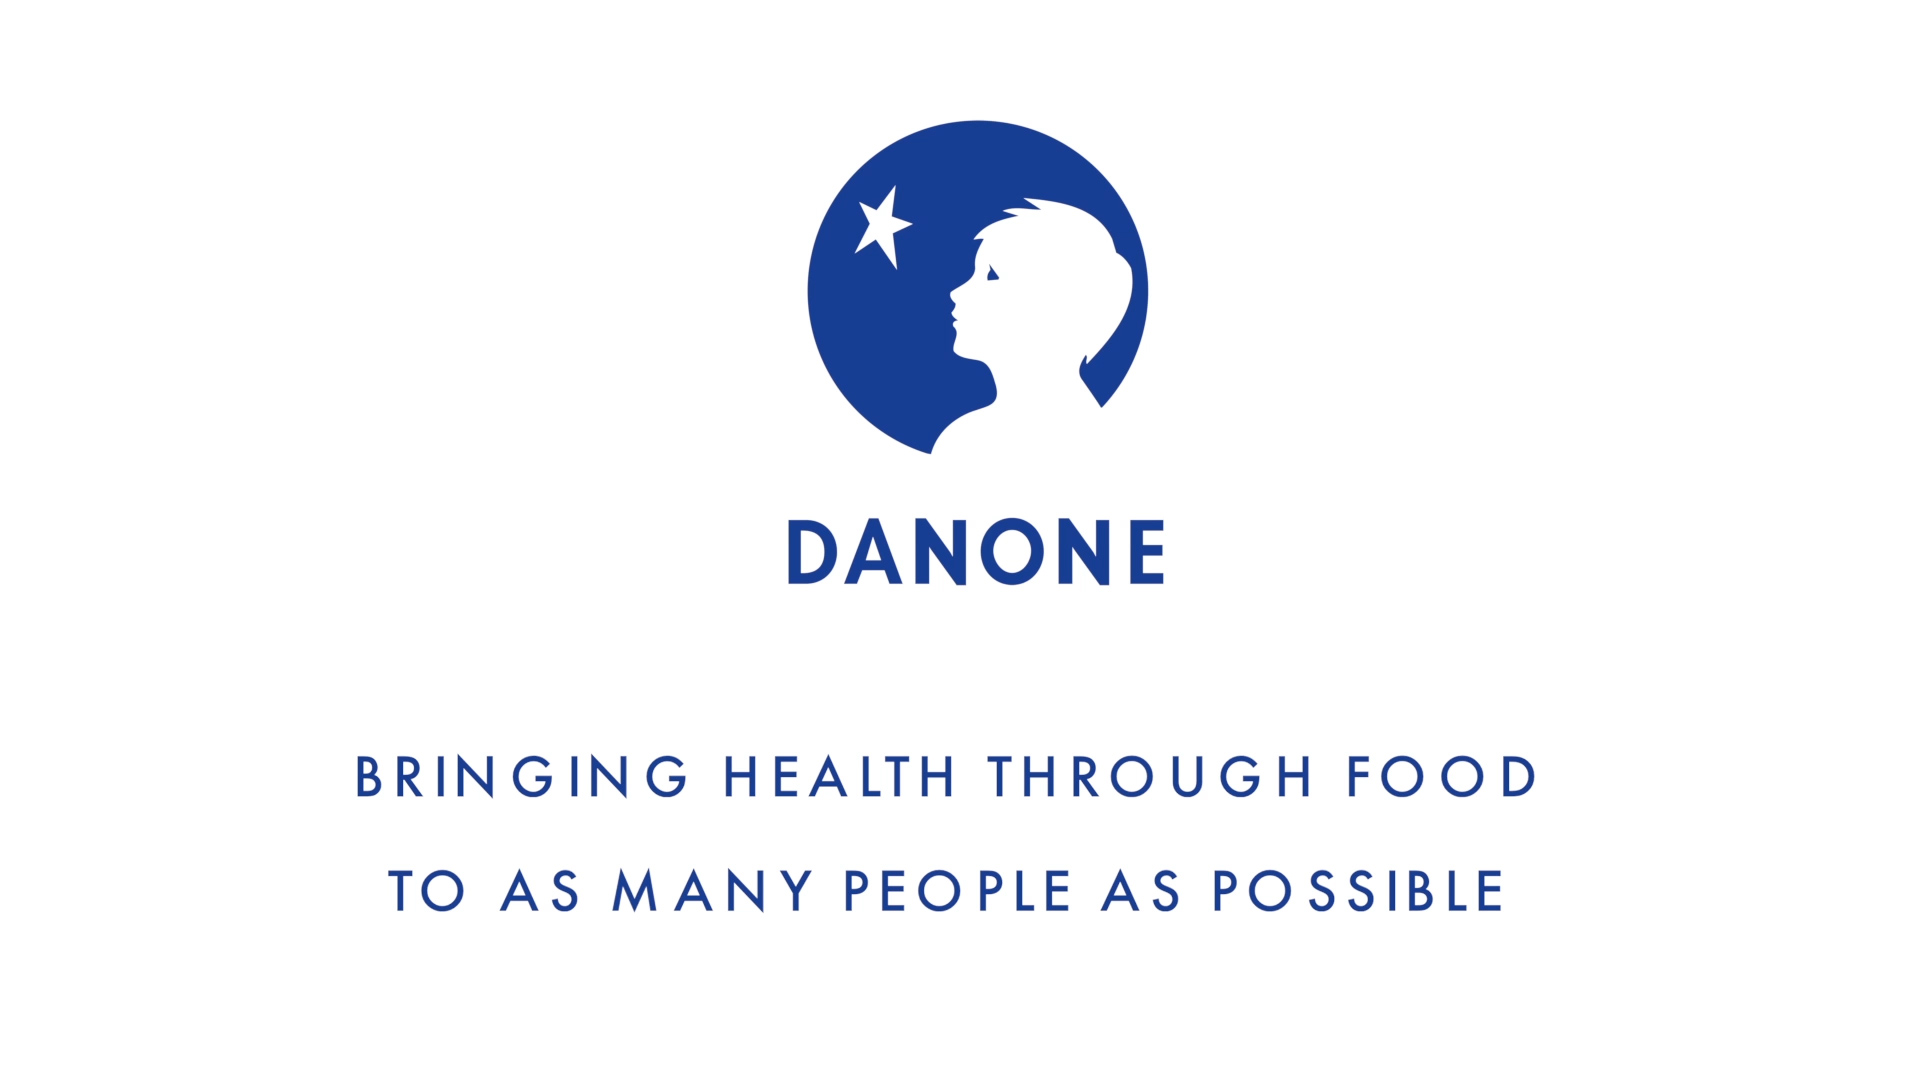 Video: Danone Positioned for Economic Growth, Social Progress